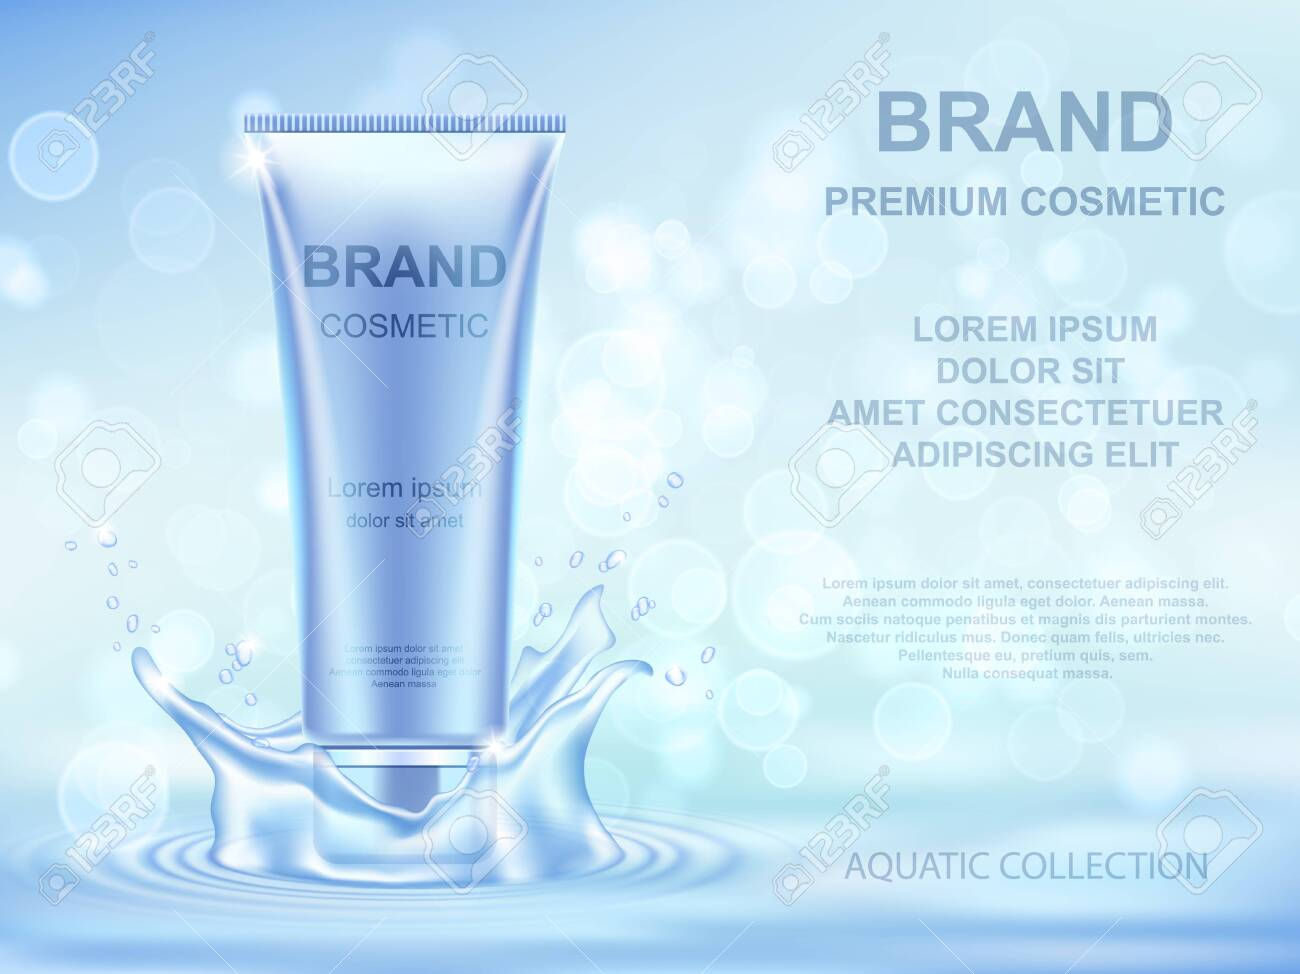 Aqua Moisturizing cosmetics ads template. Realistic cream container and water splash on blue background. - 133228229